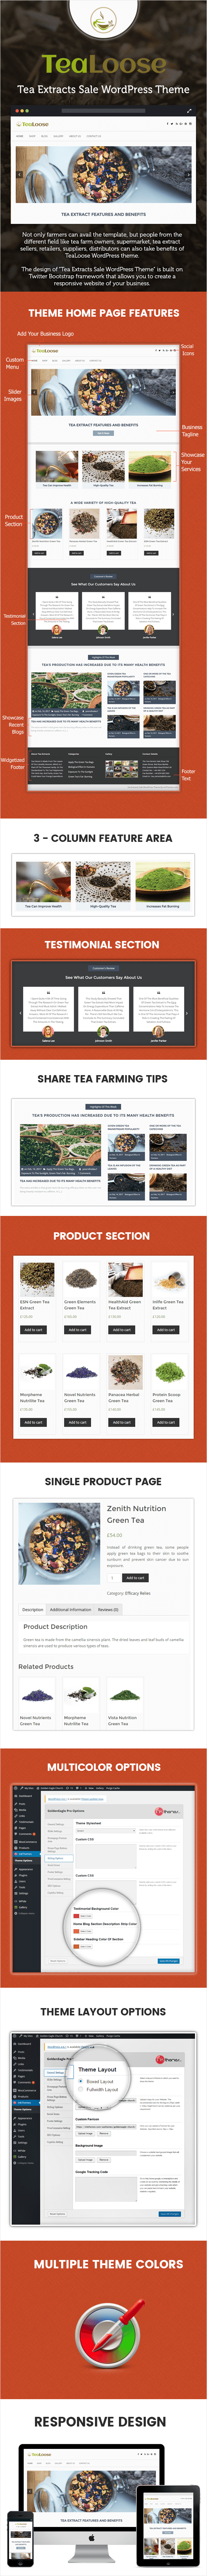 Tea Extracts Sale WordPress Theme Sales Page Image